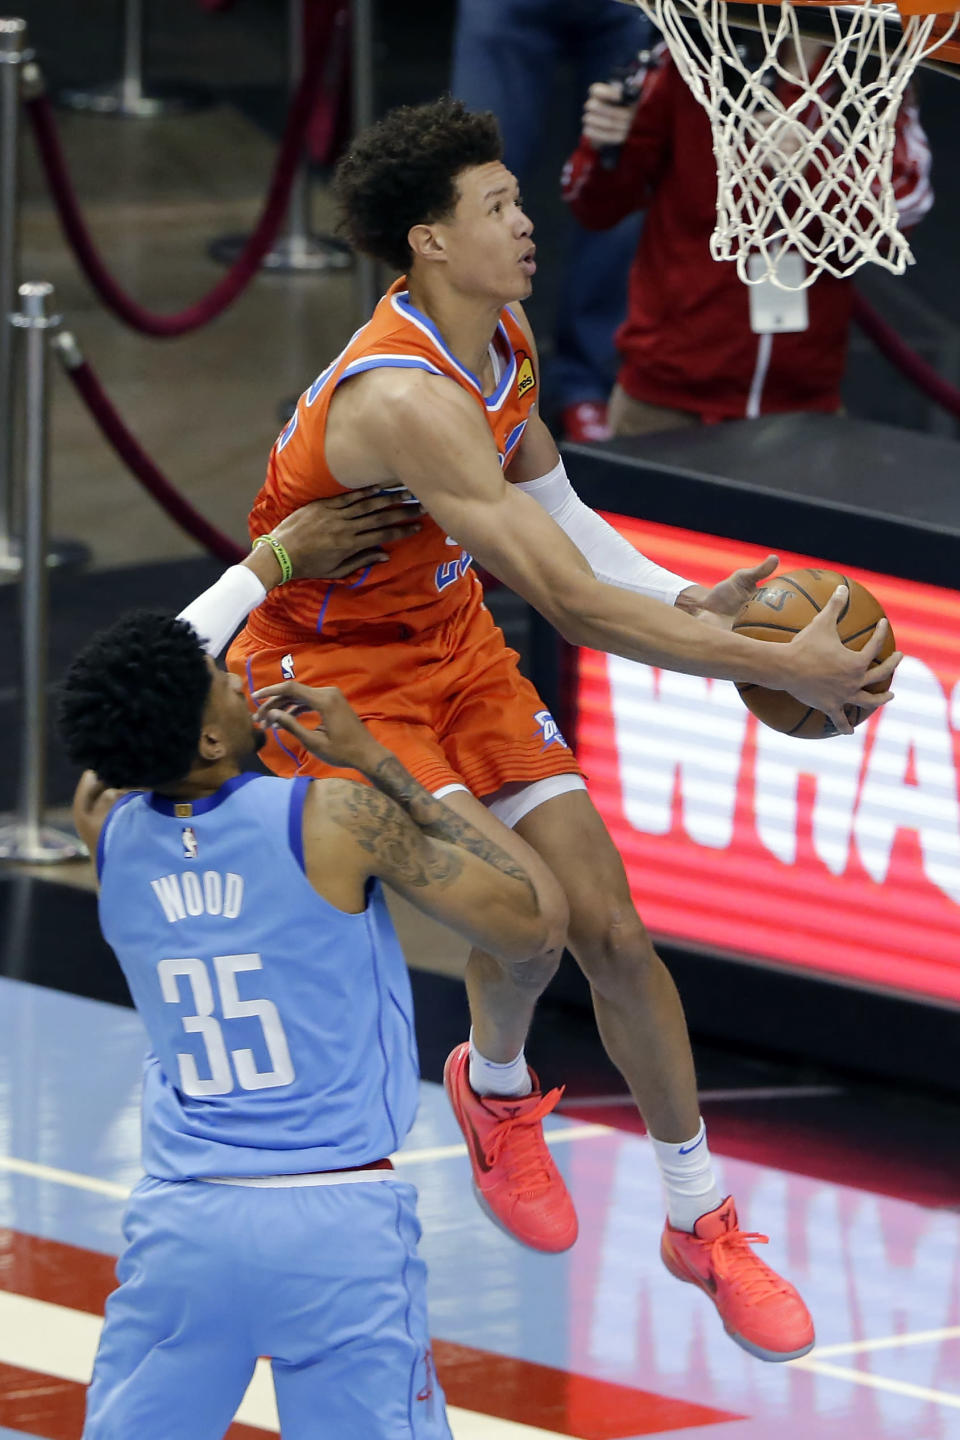 Oklahoma City Thunder center Isaiah Roby, right, puts up a shot past Houston Rockets center Christian Wood (35) during the second half of an NBA basketball game Sunday, March 21, 2021, in Houston. (AP Photo/Michael Wyke)